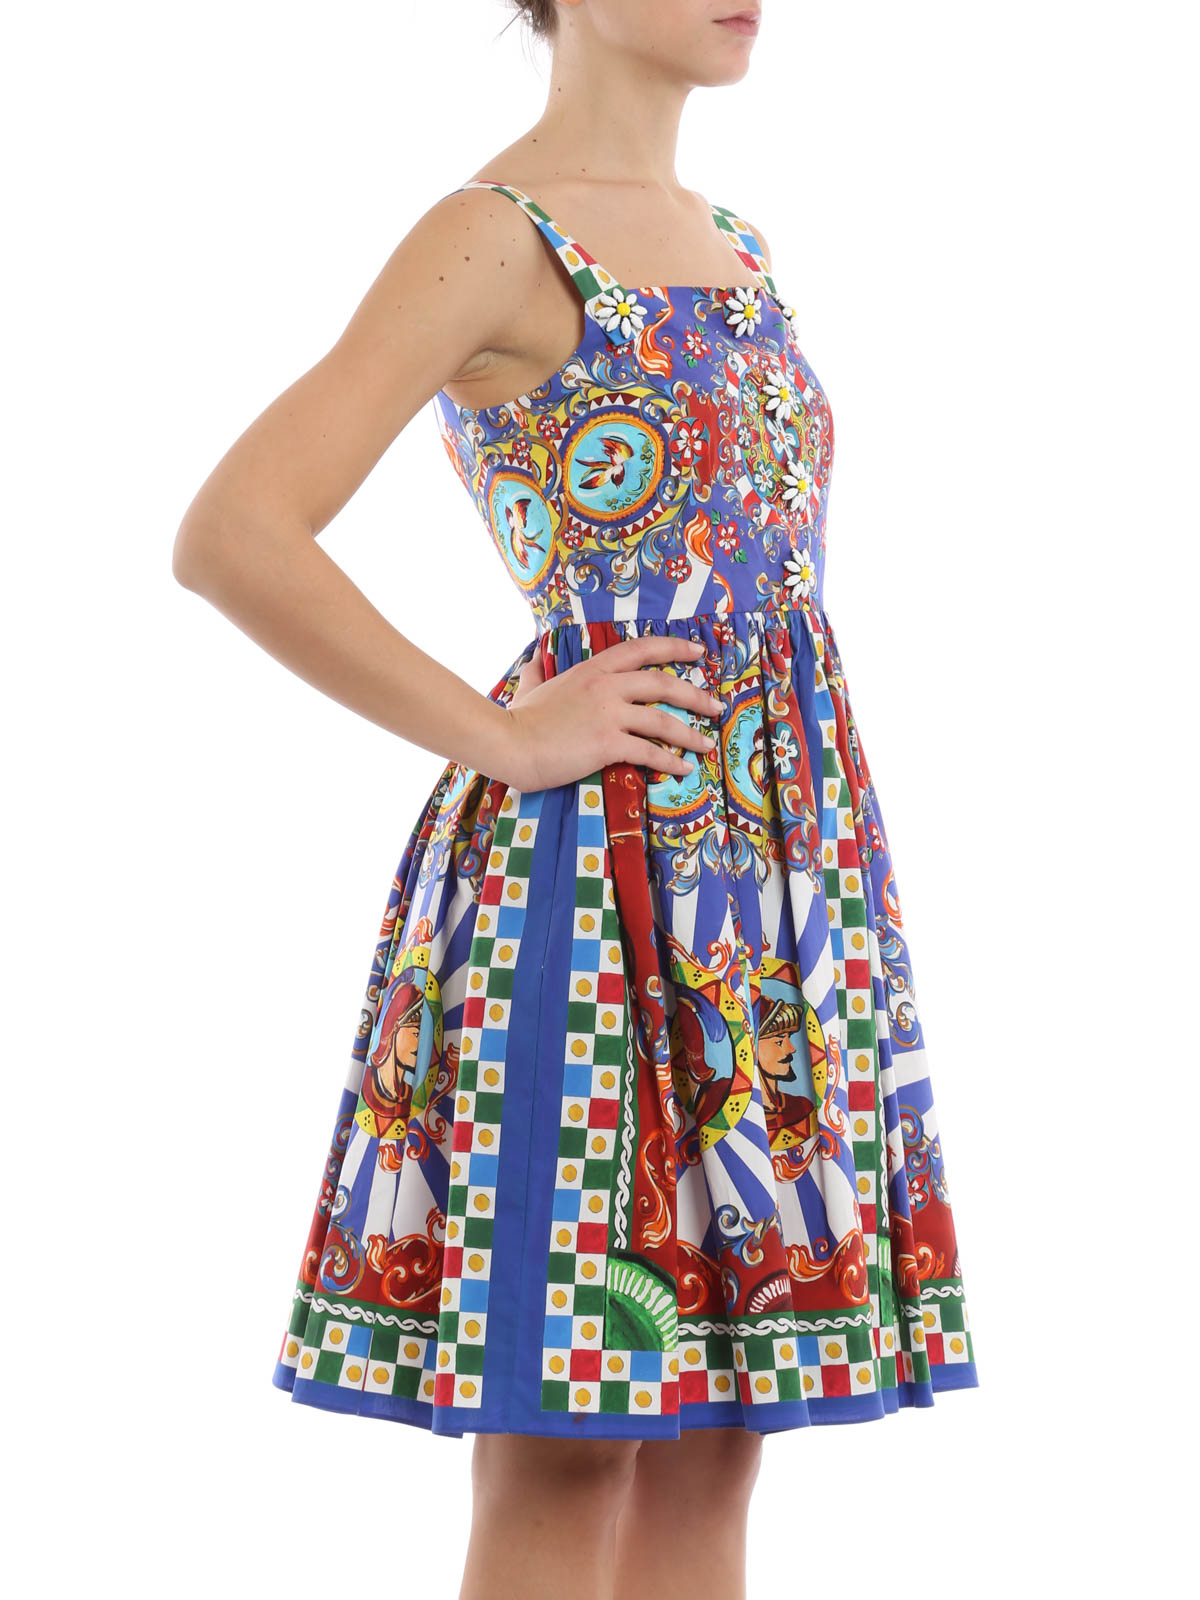 6c5af16829 Dolce   Gabbana - Carretto Siciliano dress - cocktail dresses ...